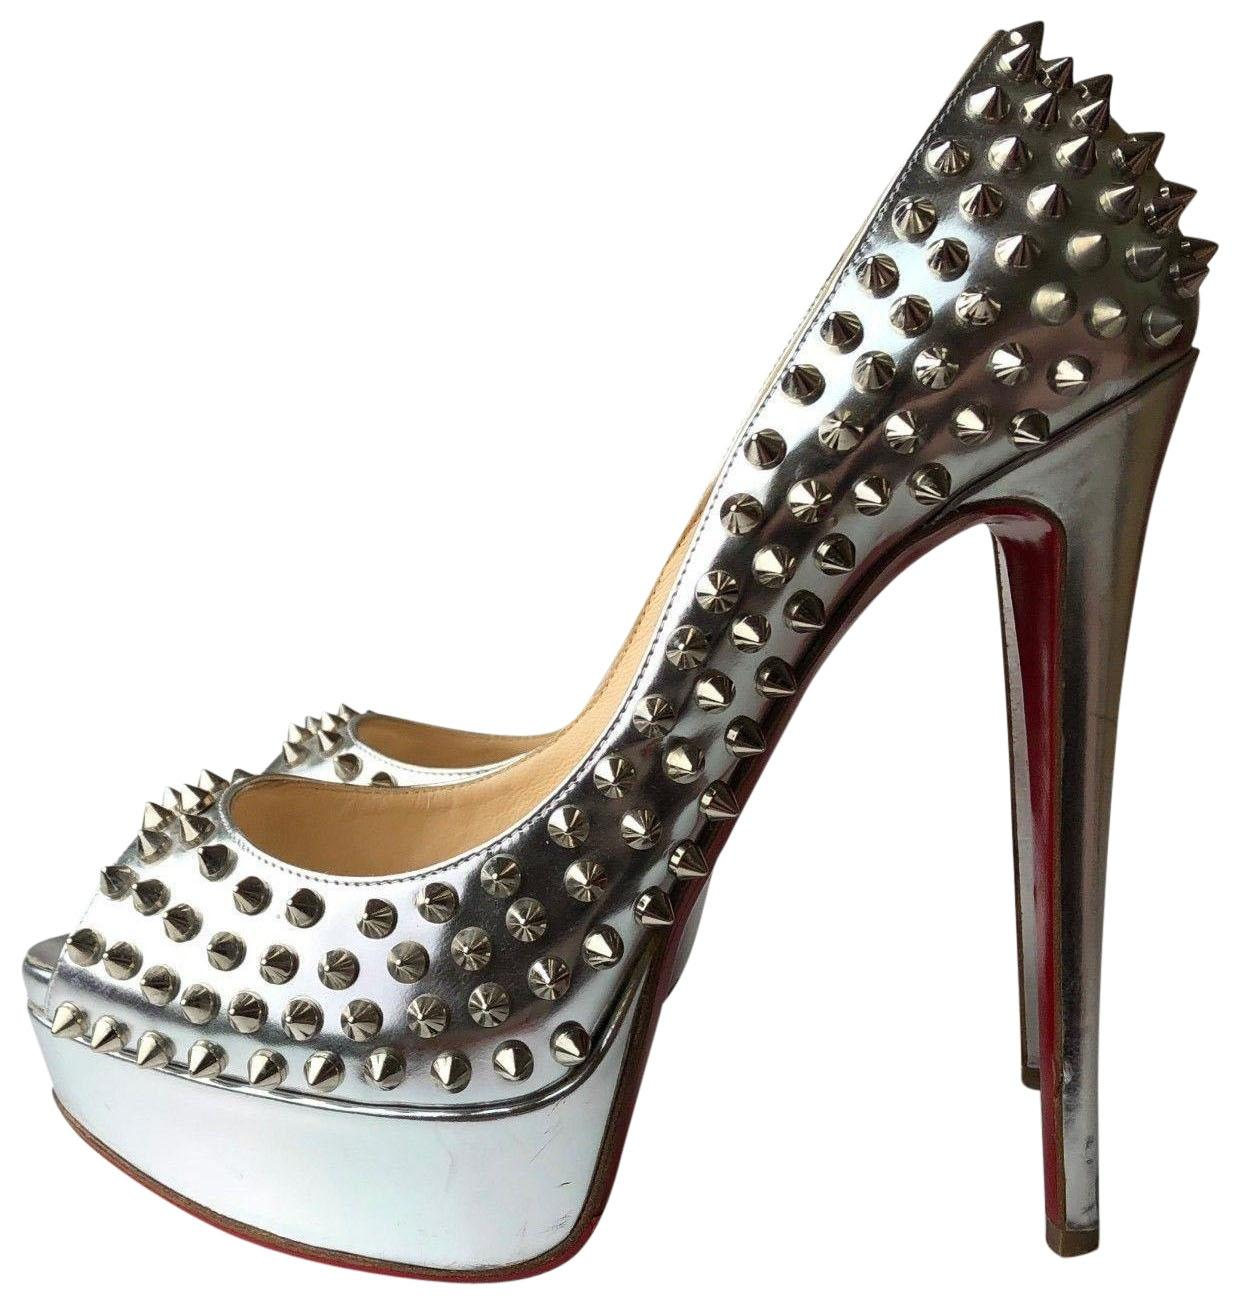 a52756f99c6 Christian Louboutin Silver Lady Lady Lady Peep Spikes 150 Leather Pumps Size  EU 39 (Approx. US 9) Regular (M